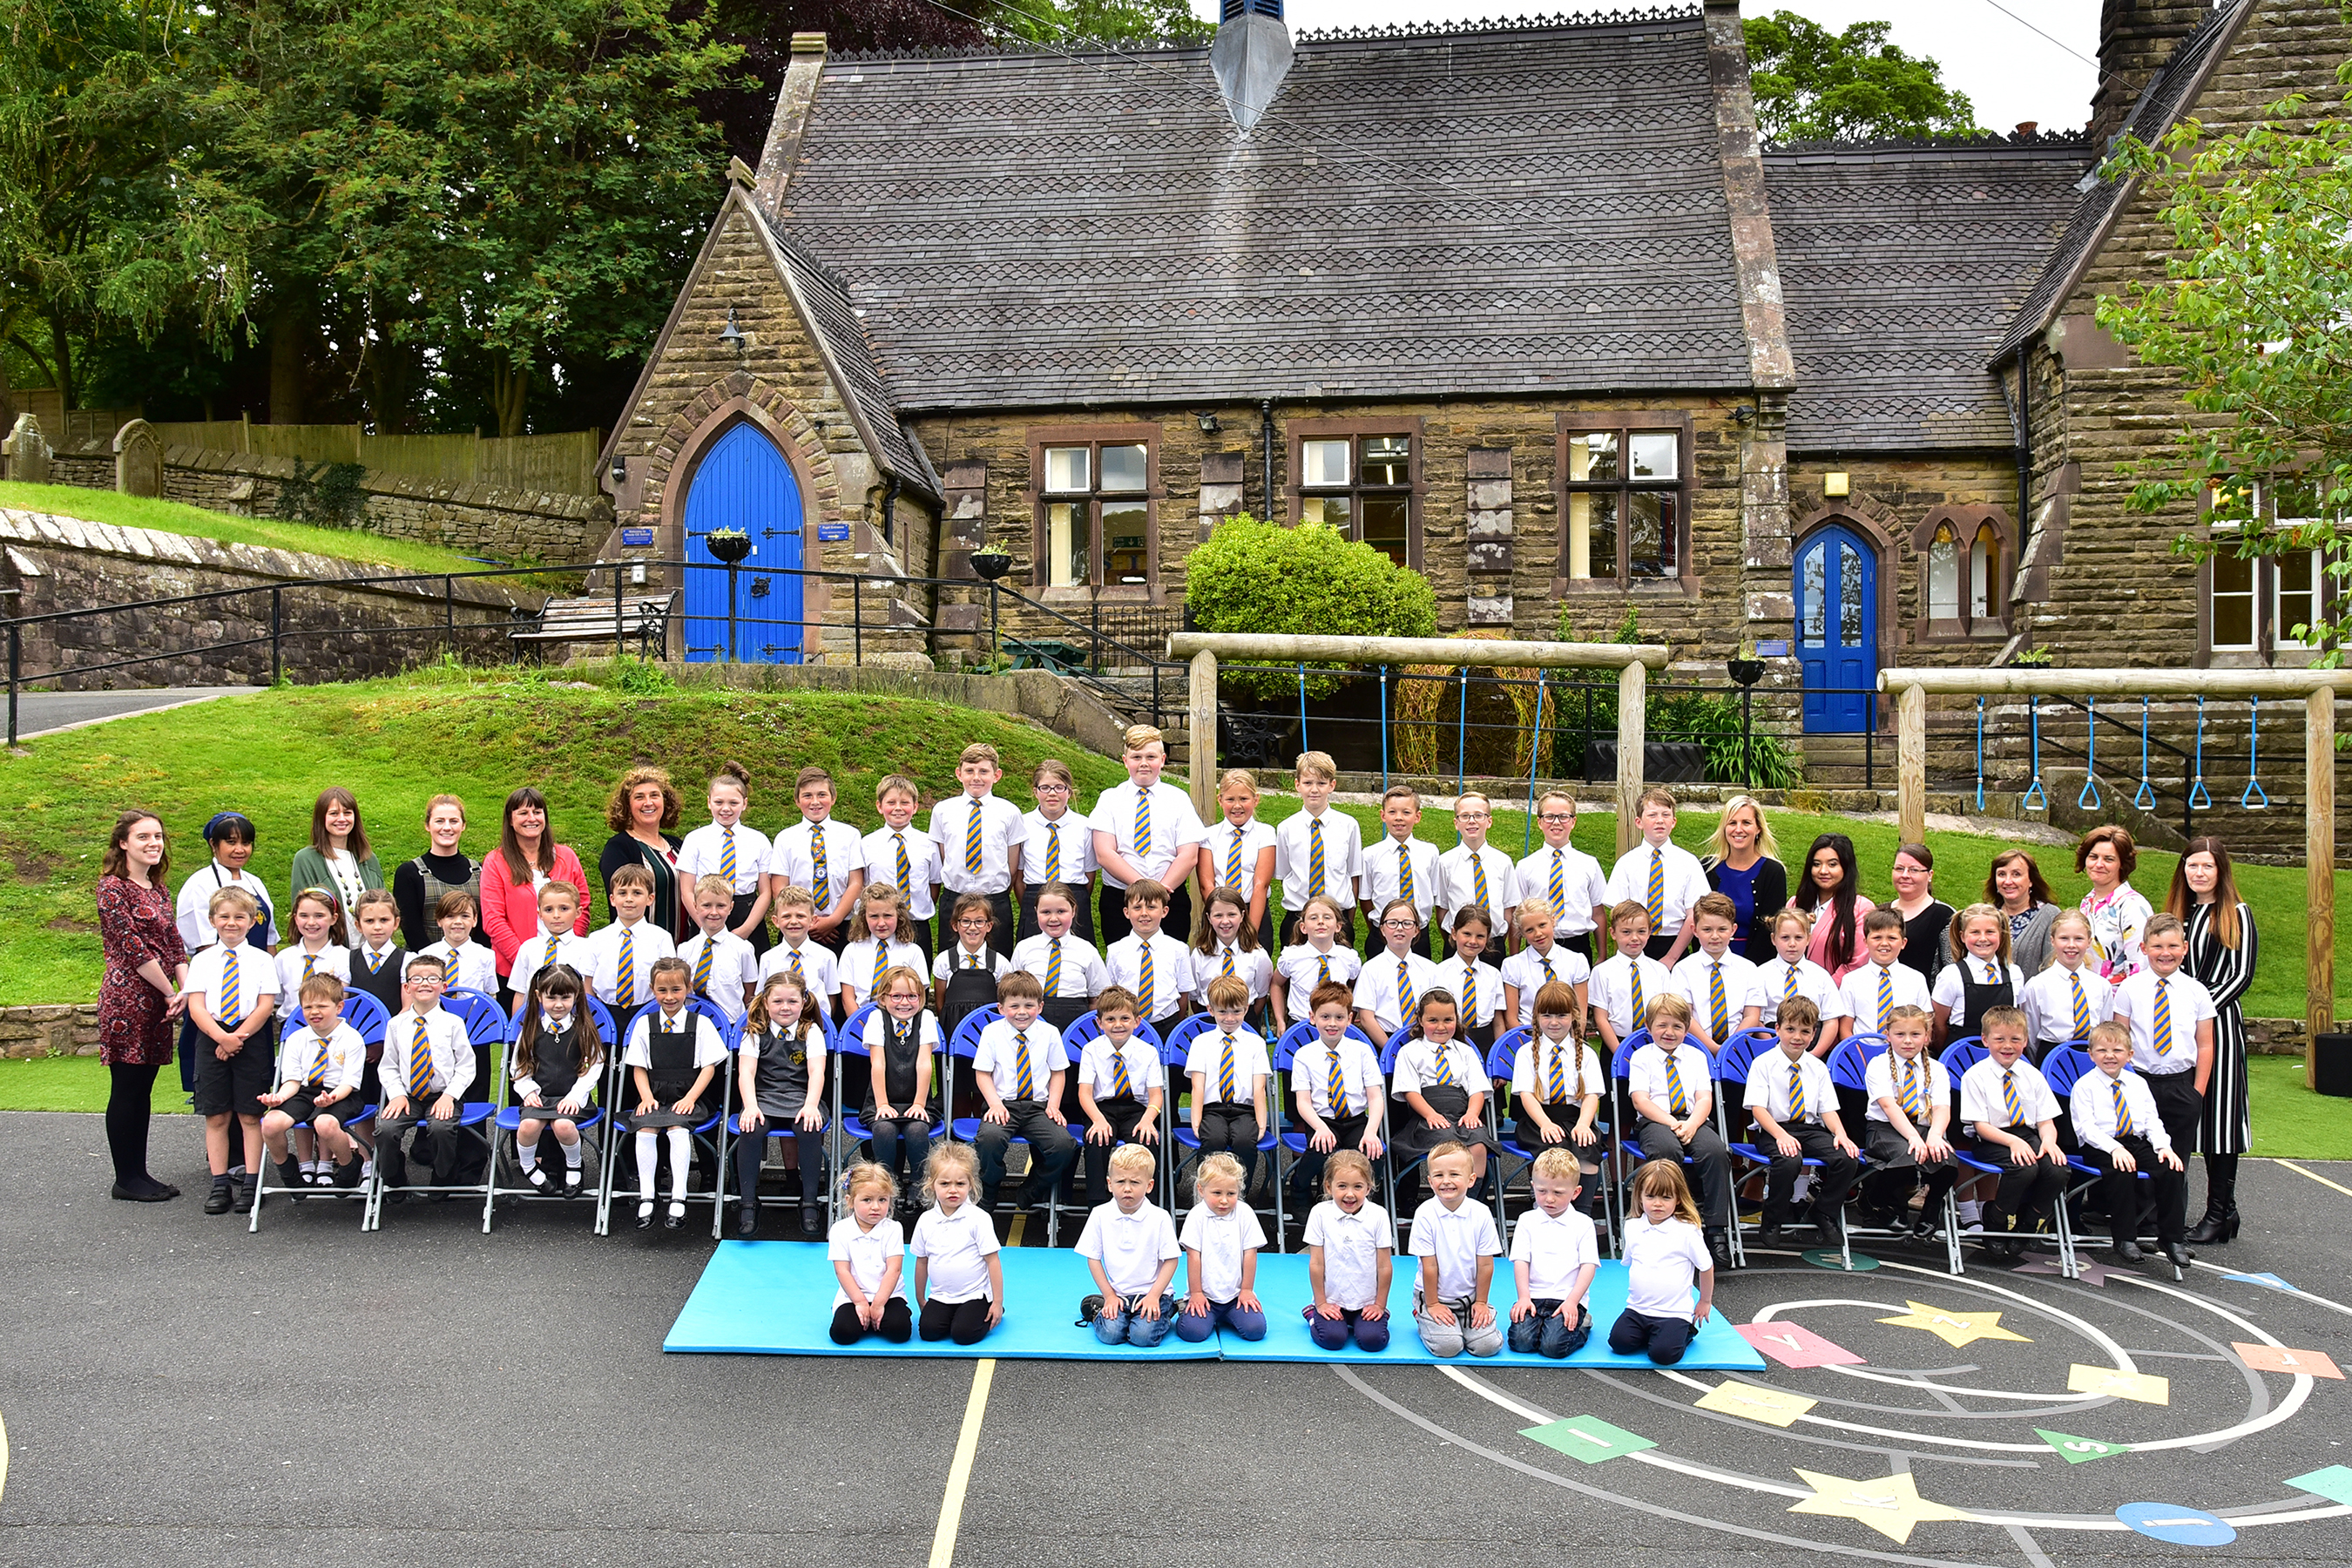 2019 WINCLE CE PRIMARY SCHOOL (1)